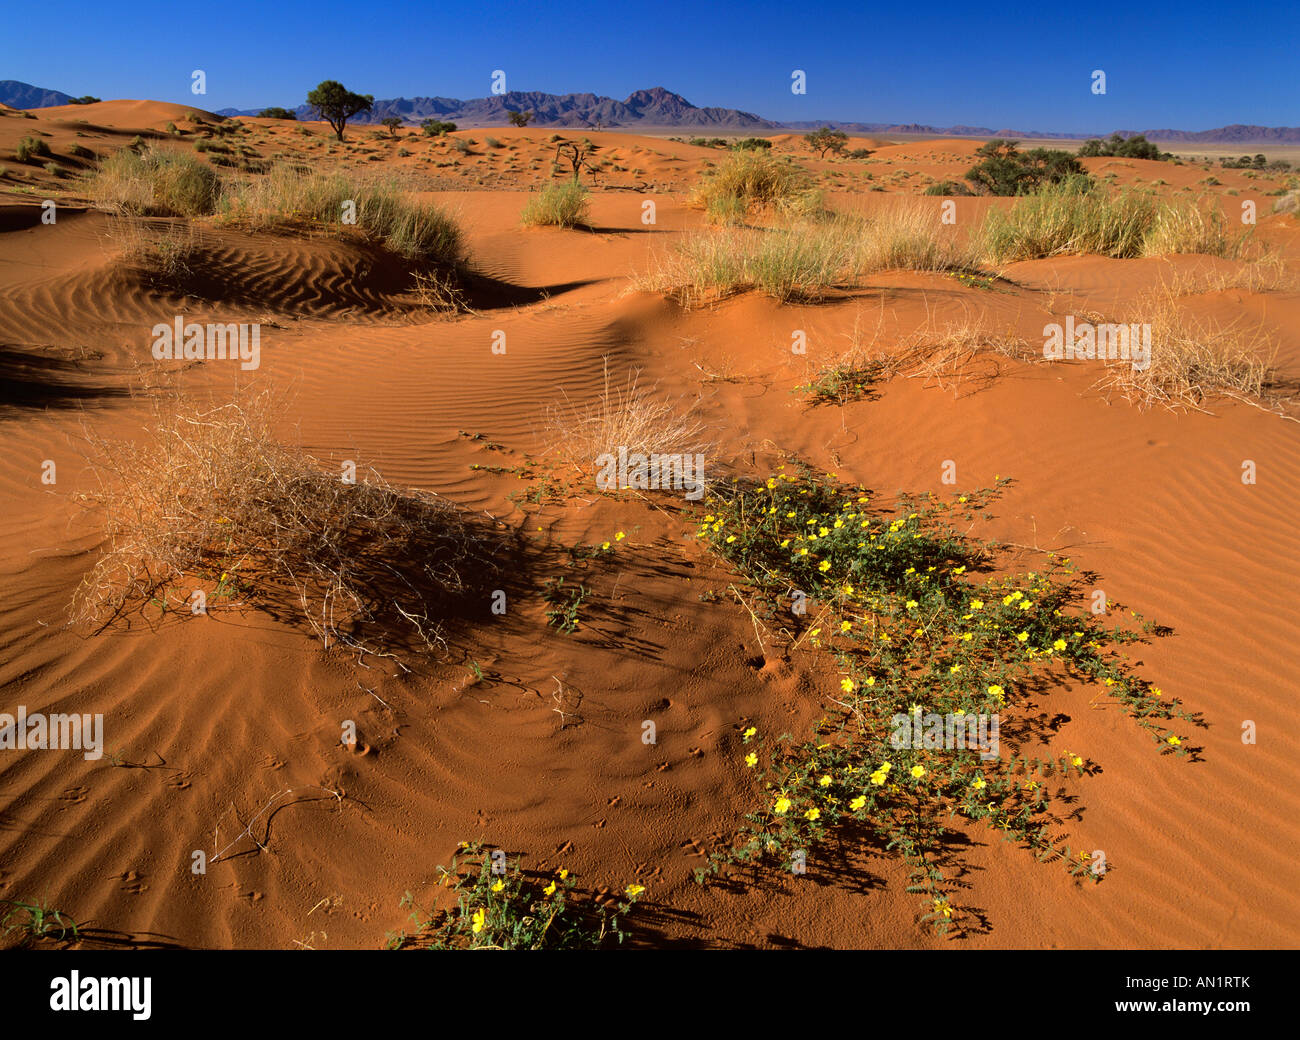 dunes and yellow flowers in desert Namib Rand Nature Reserve Namibia Africa - Stock Image